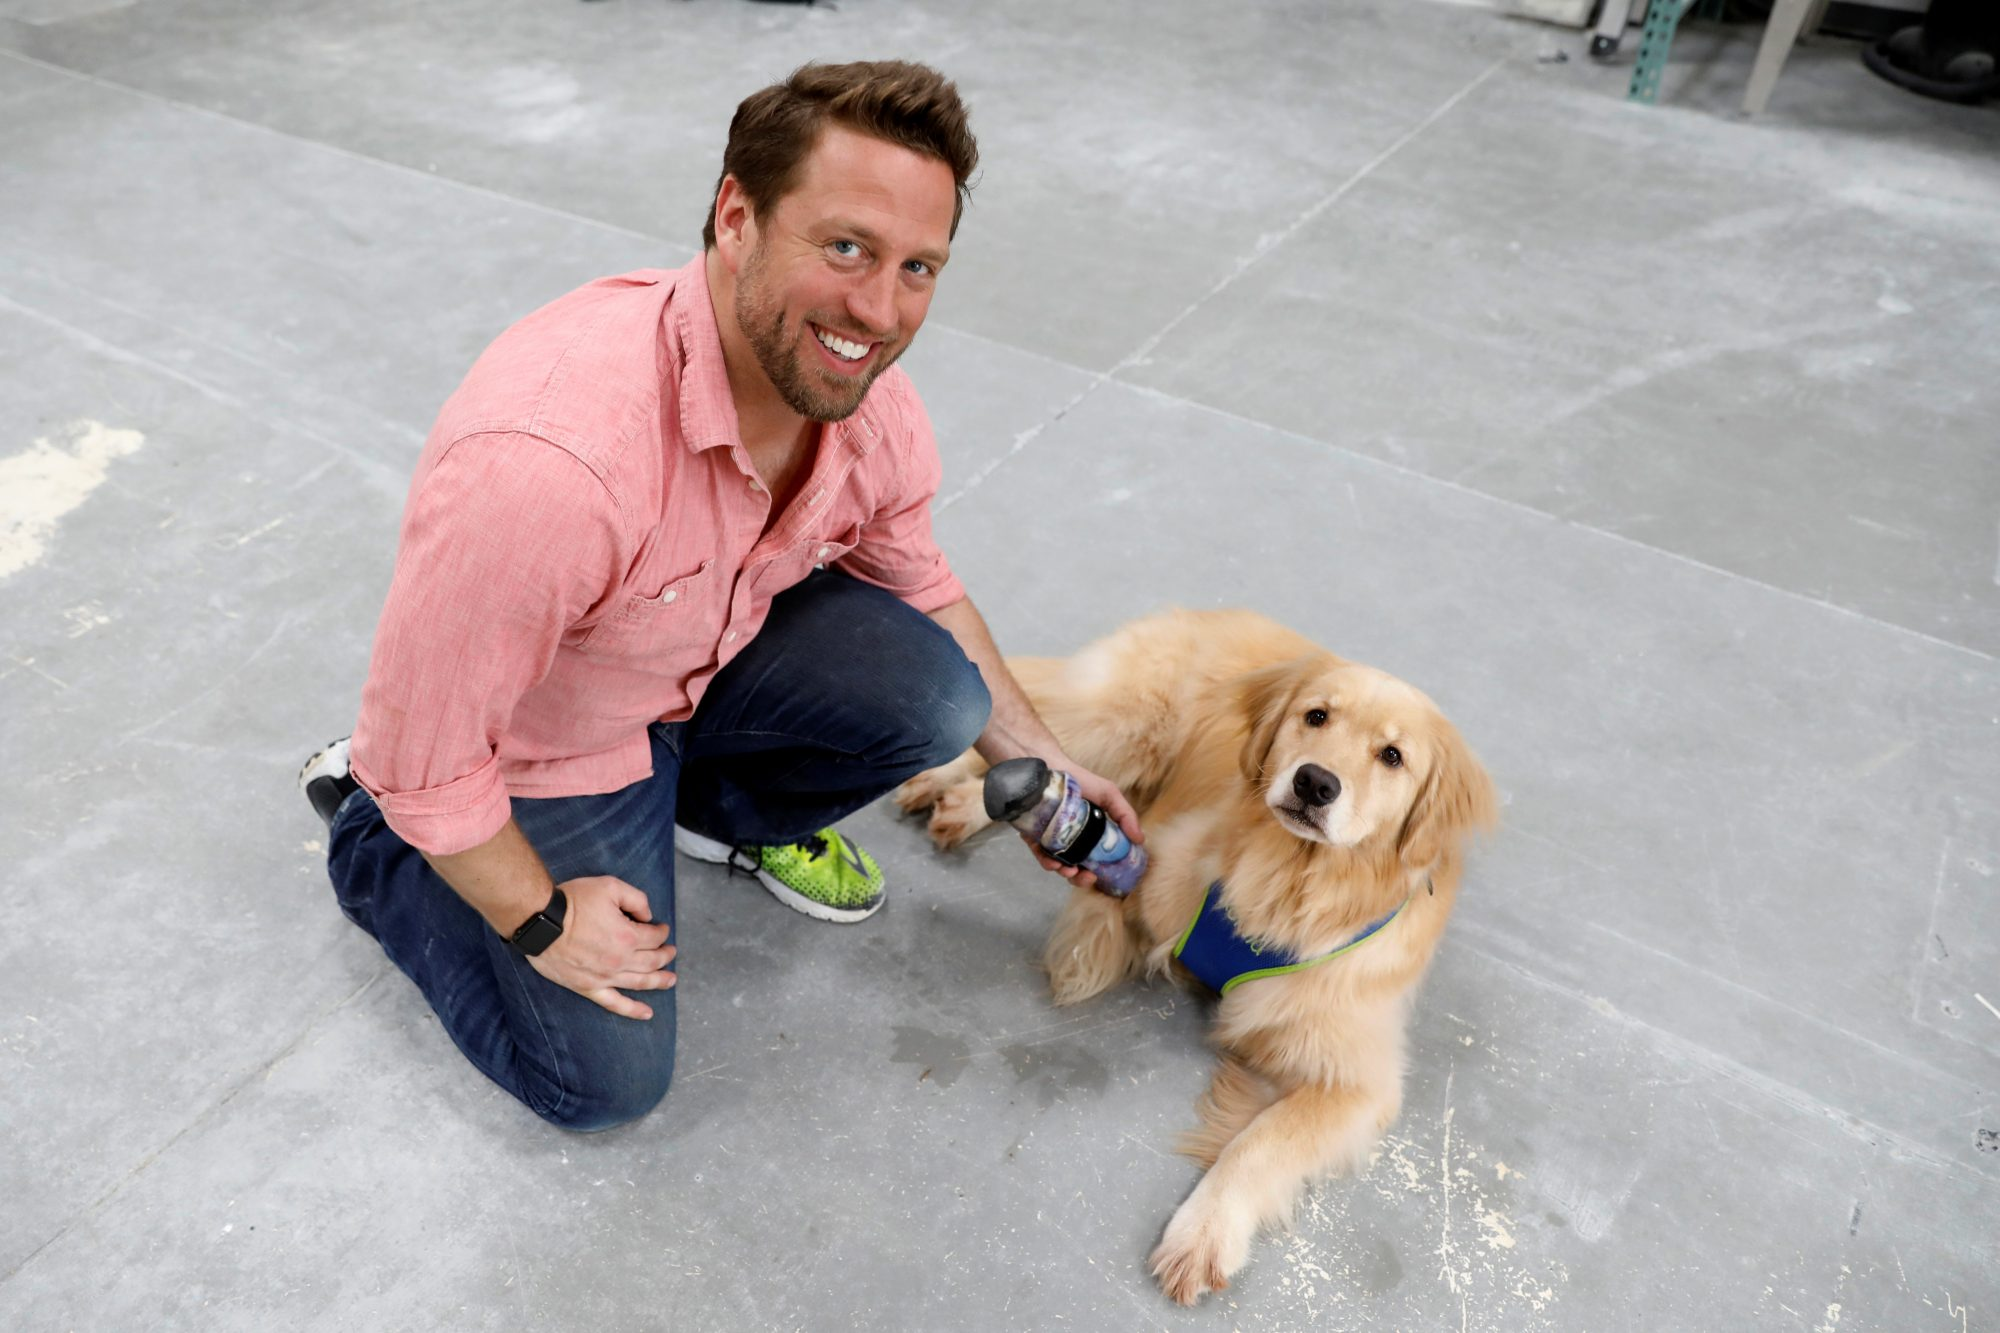 Derrick Campana holds the prosthetic paw he made for Kenna, a three year-old golden retriever born without a front paw. More than 90 percent of Campana's patients are dogs. Photo by Kevin Lamarque/Reuters